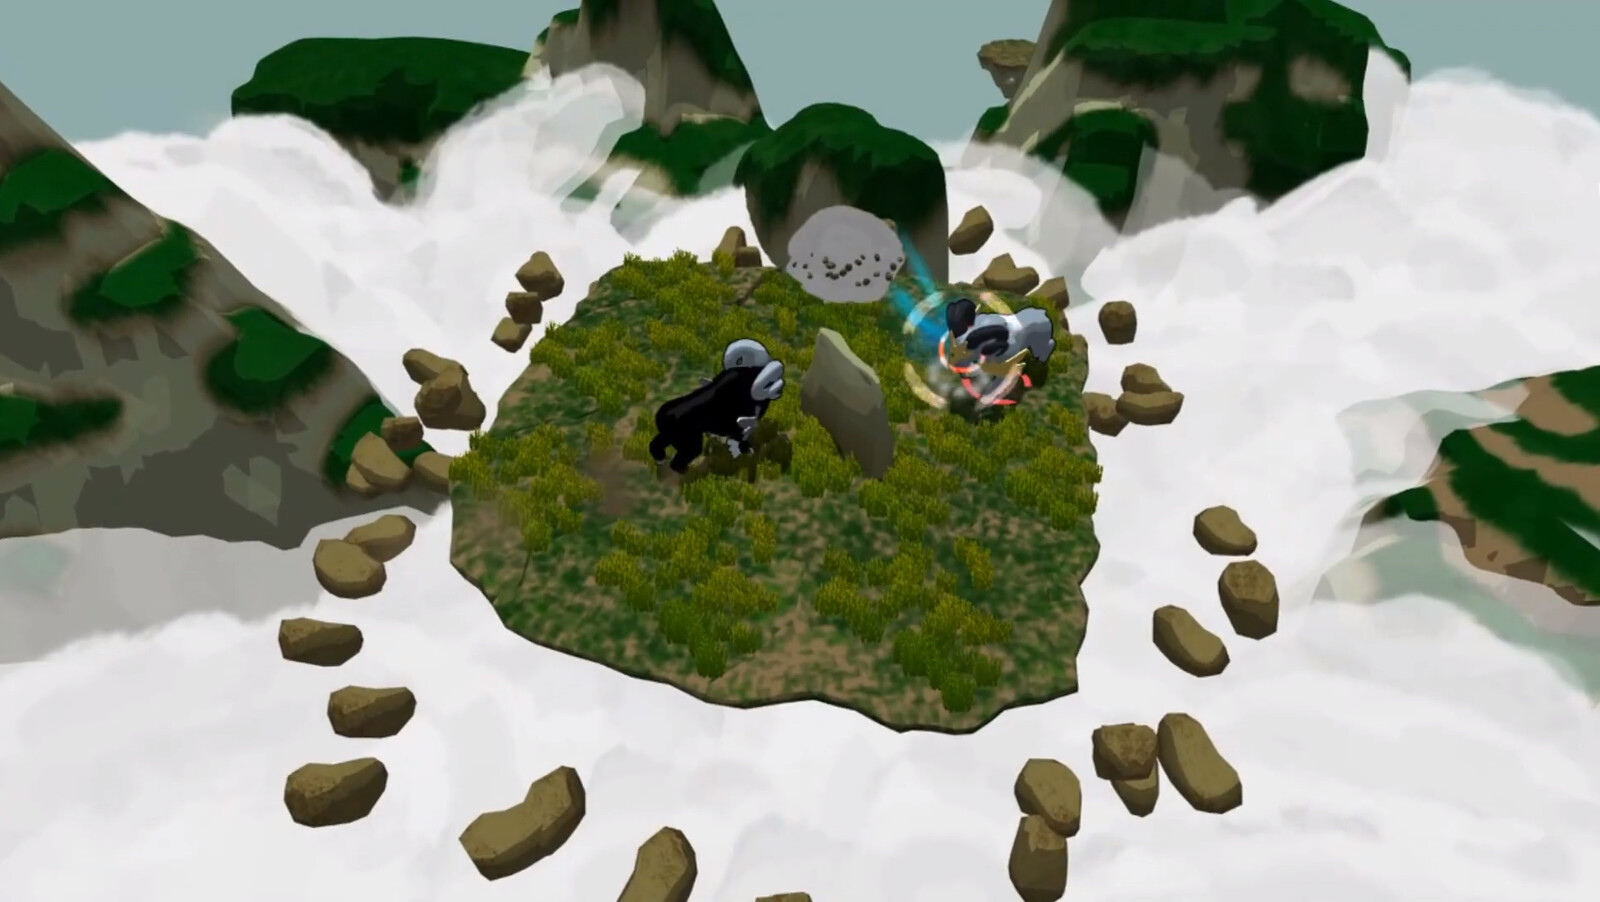 In-game screenshot of the ram with both original color scheme and alternate color scheme